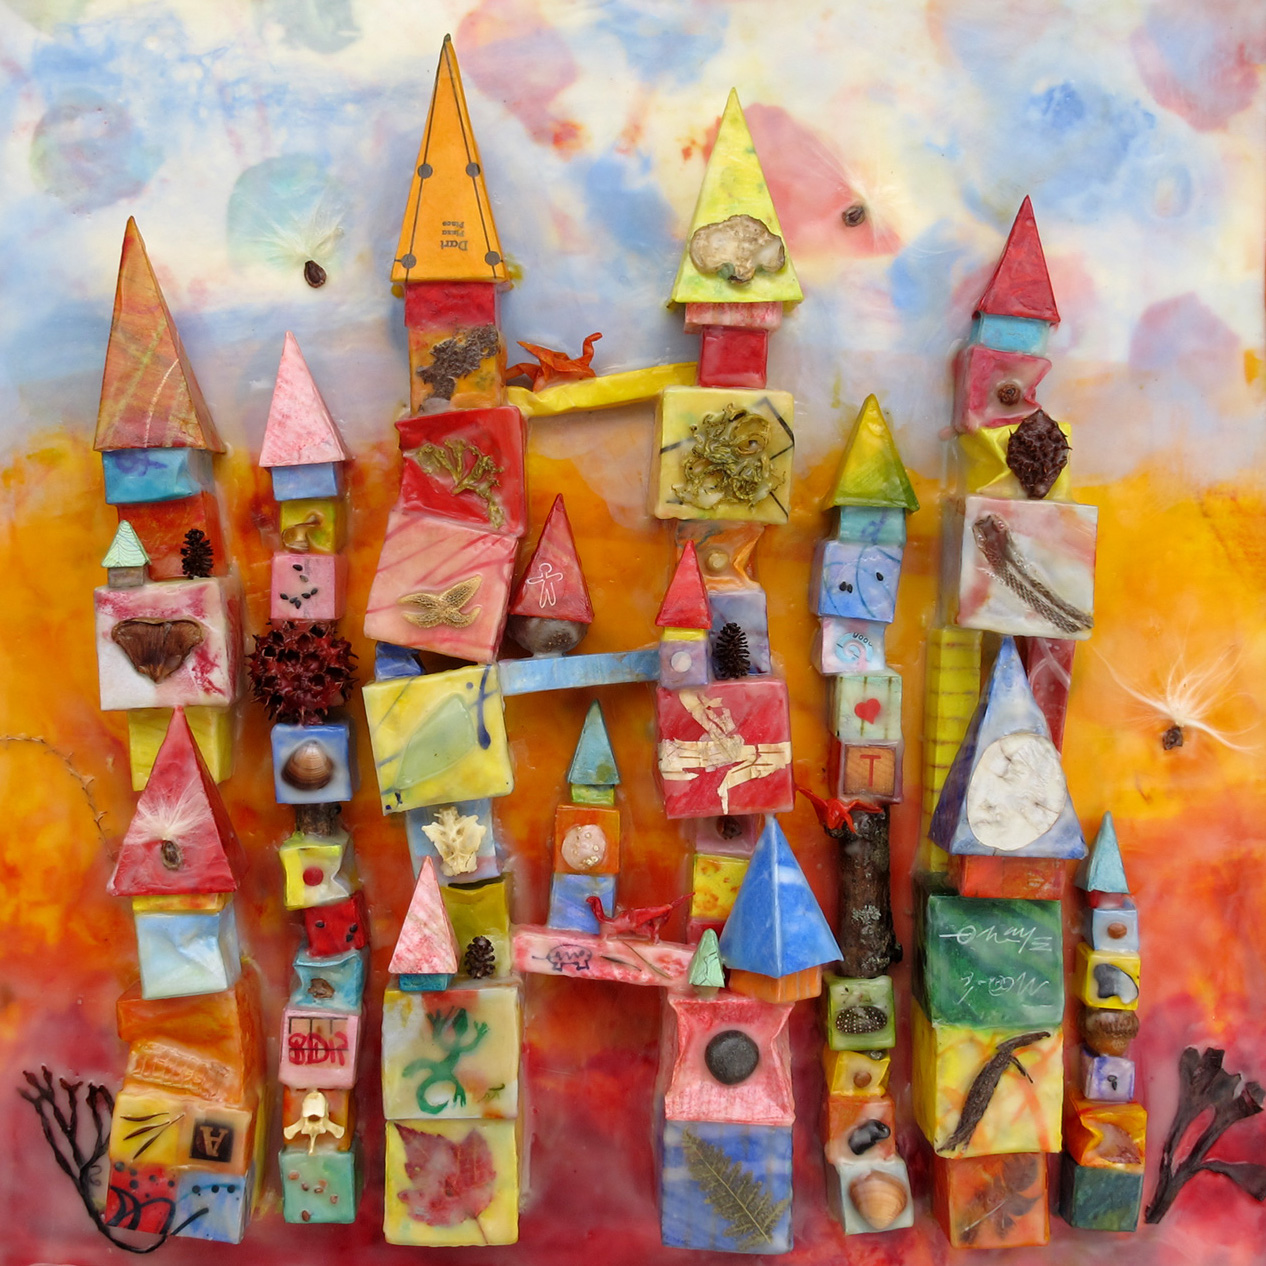 "<p><strong>JEANNE BOROFSKY</strong>encaustic, printmaking<a href=""/jeanne-borofsky"">More →</a></p>"